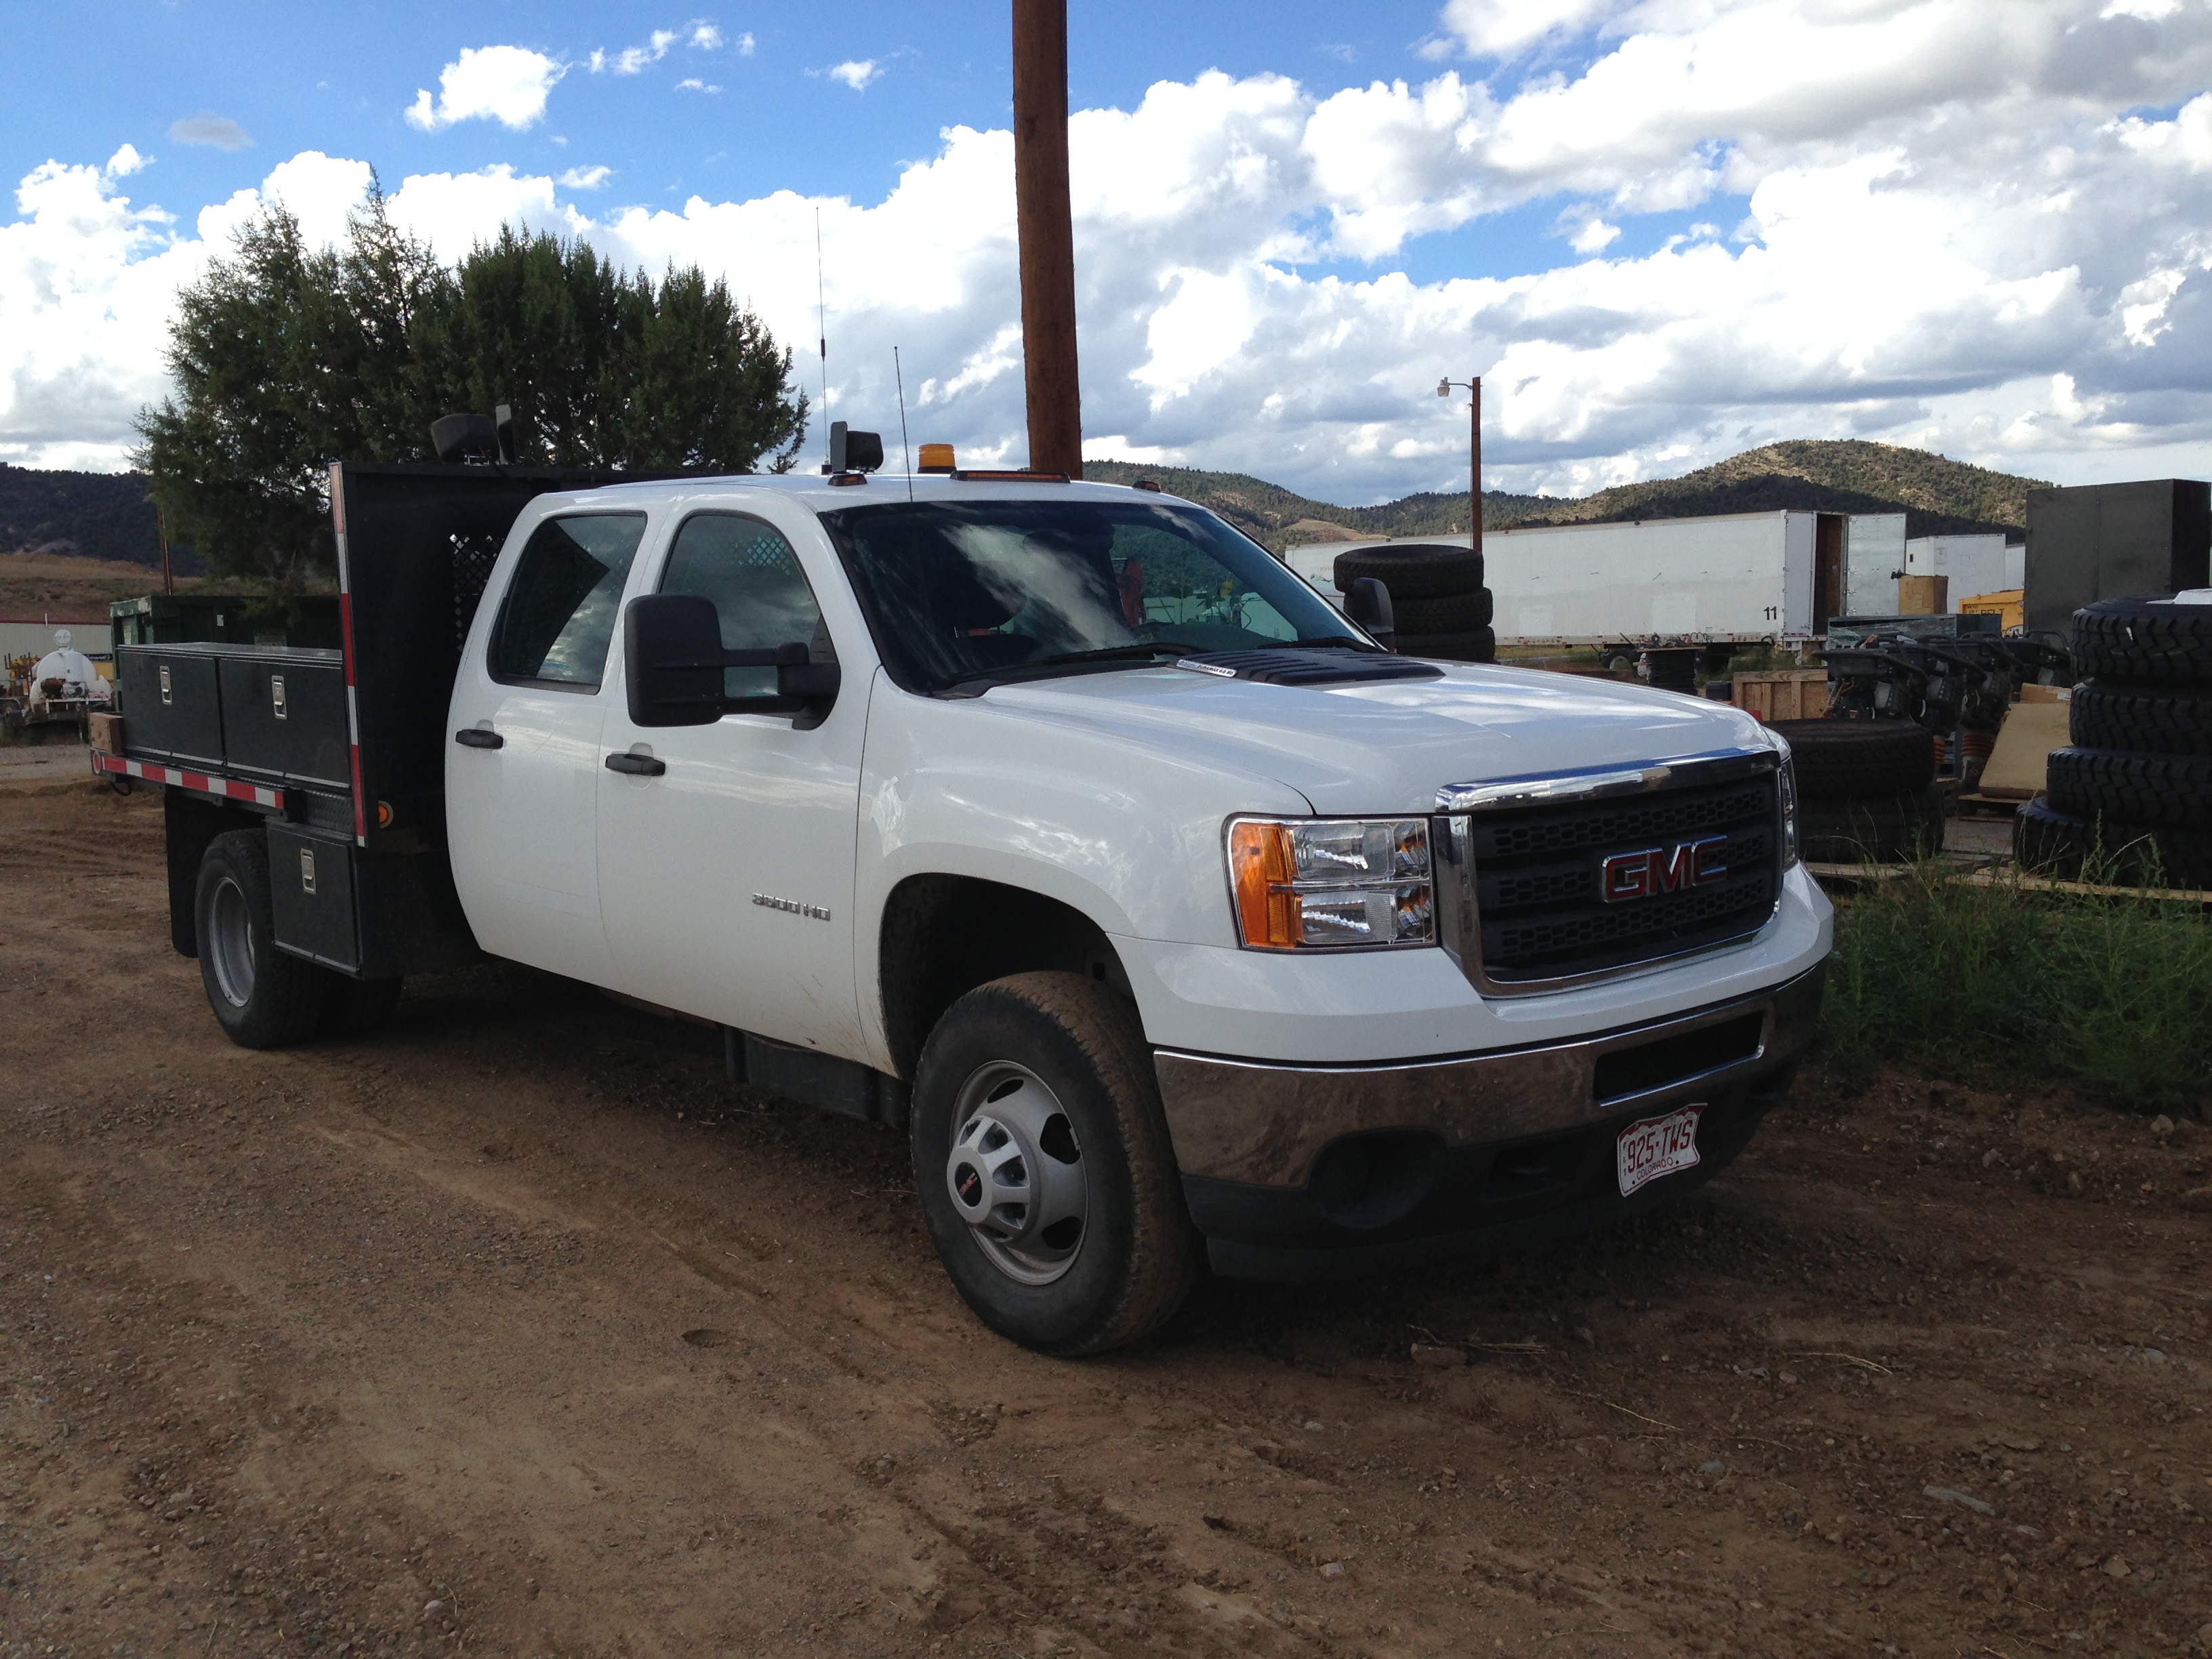 Used Cars And Trucks >> Durango, Pueblo, Larkspur, Denver, Public Liquidation